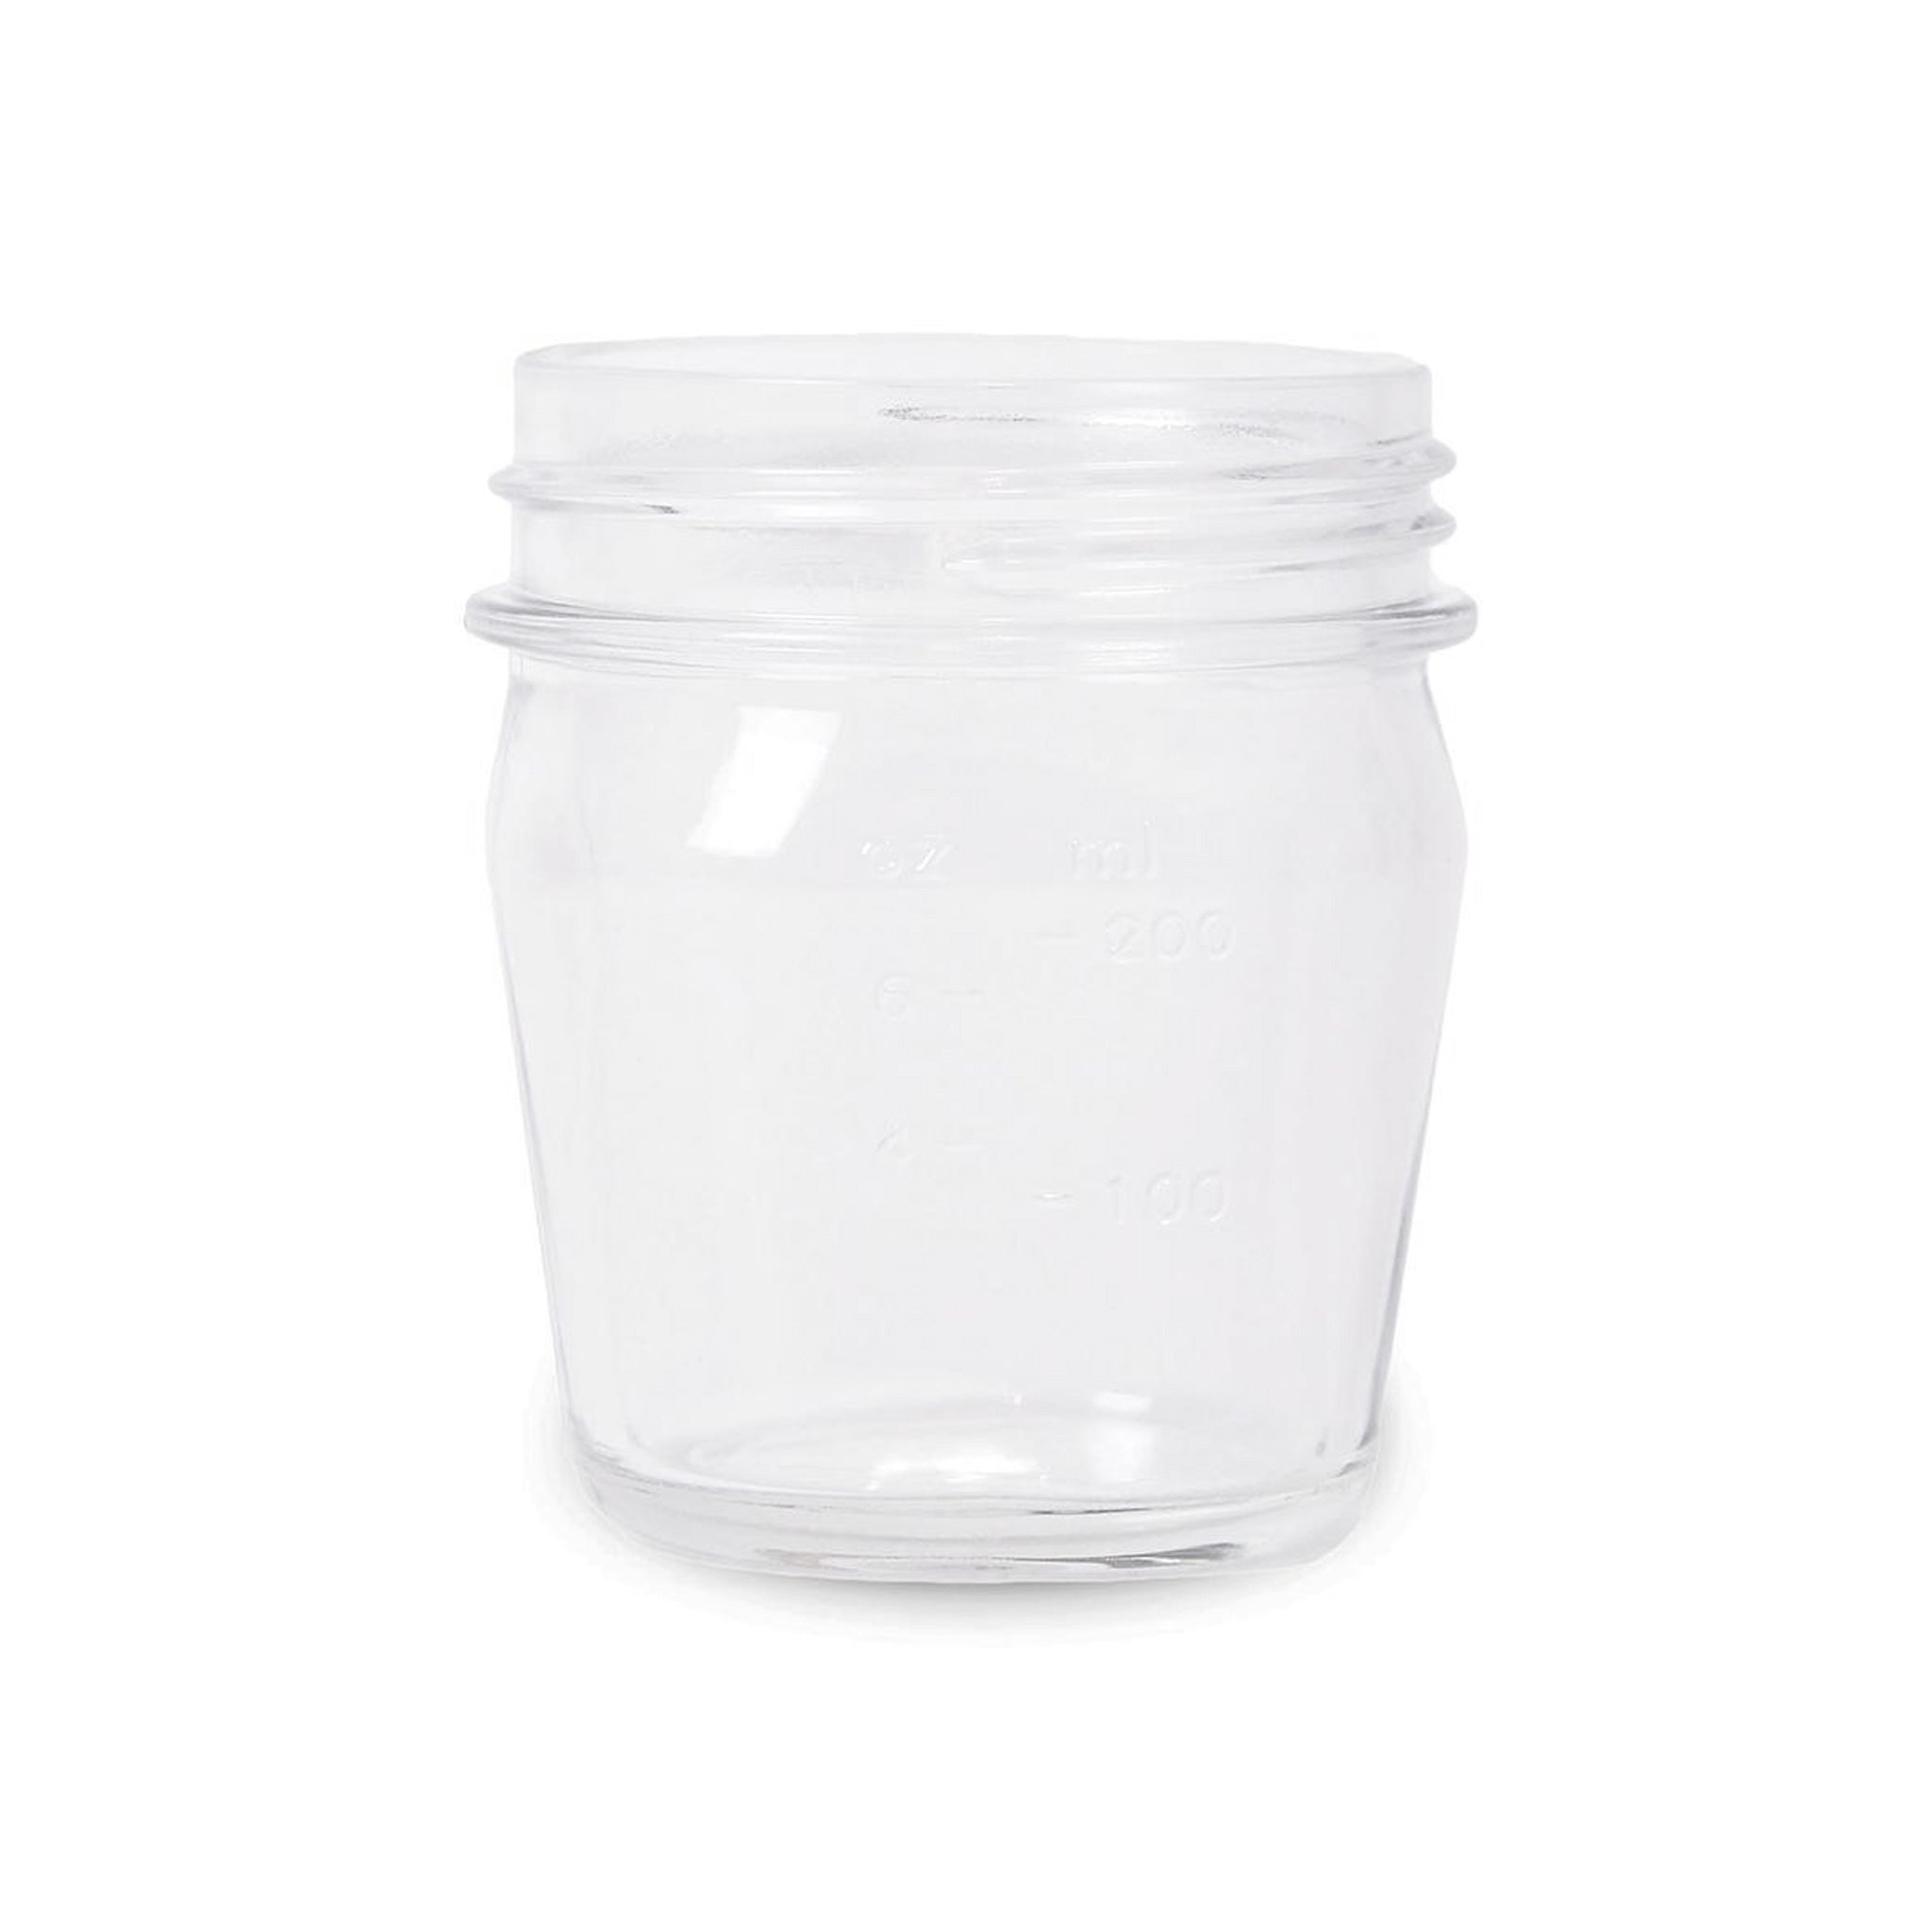 8 oz Glass Container for the Glass Personal Blender®.